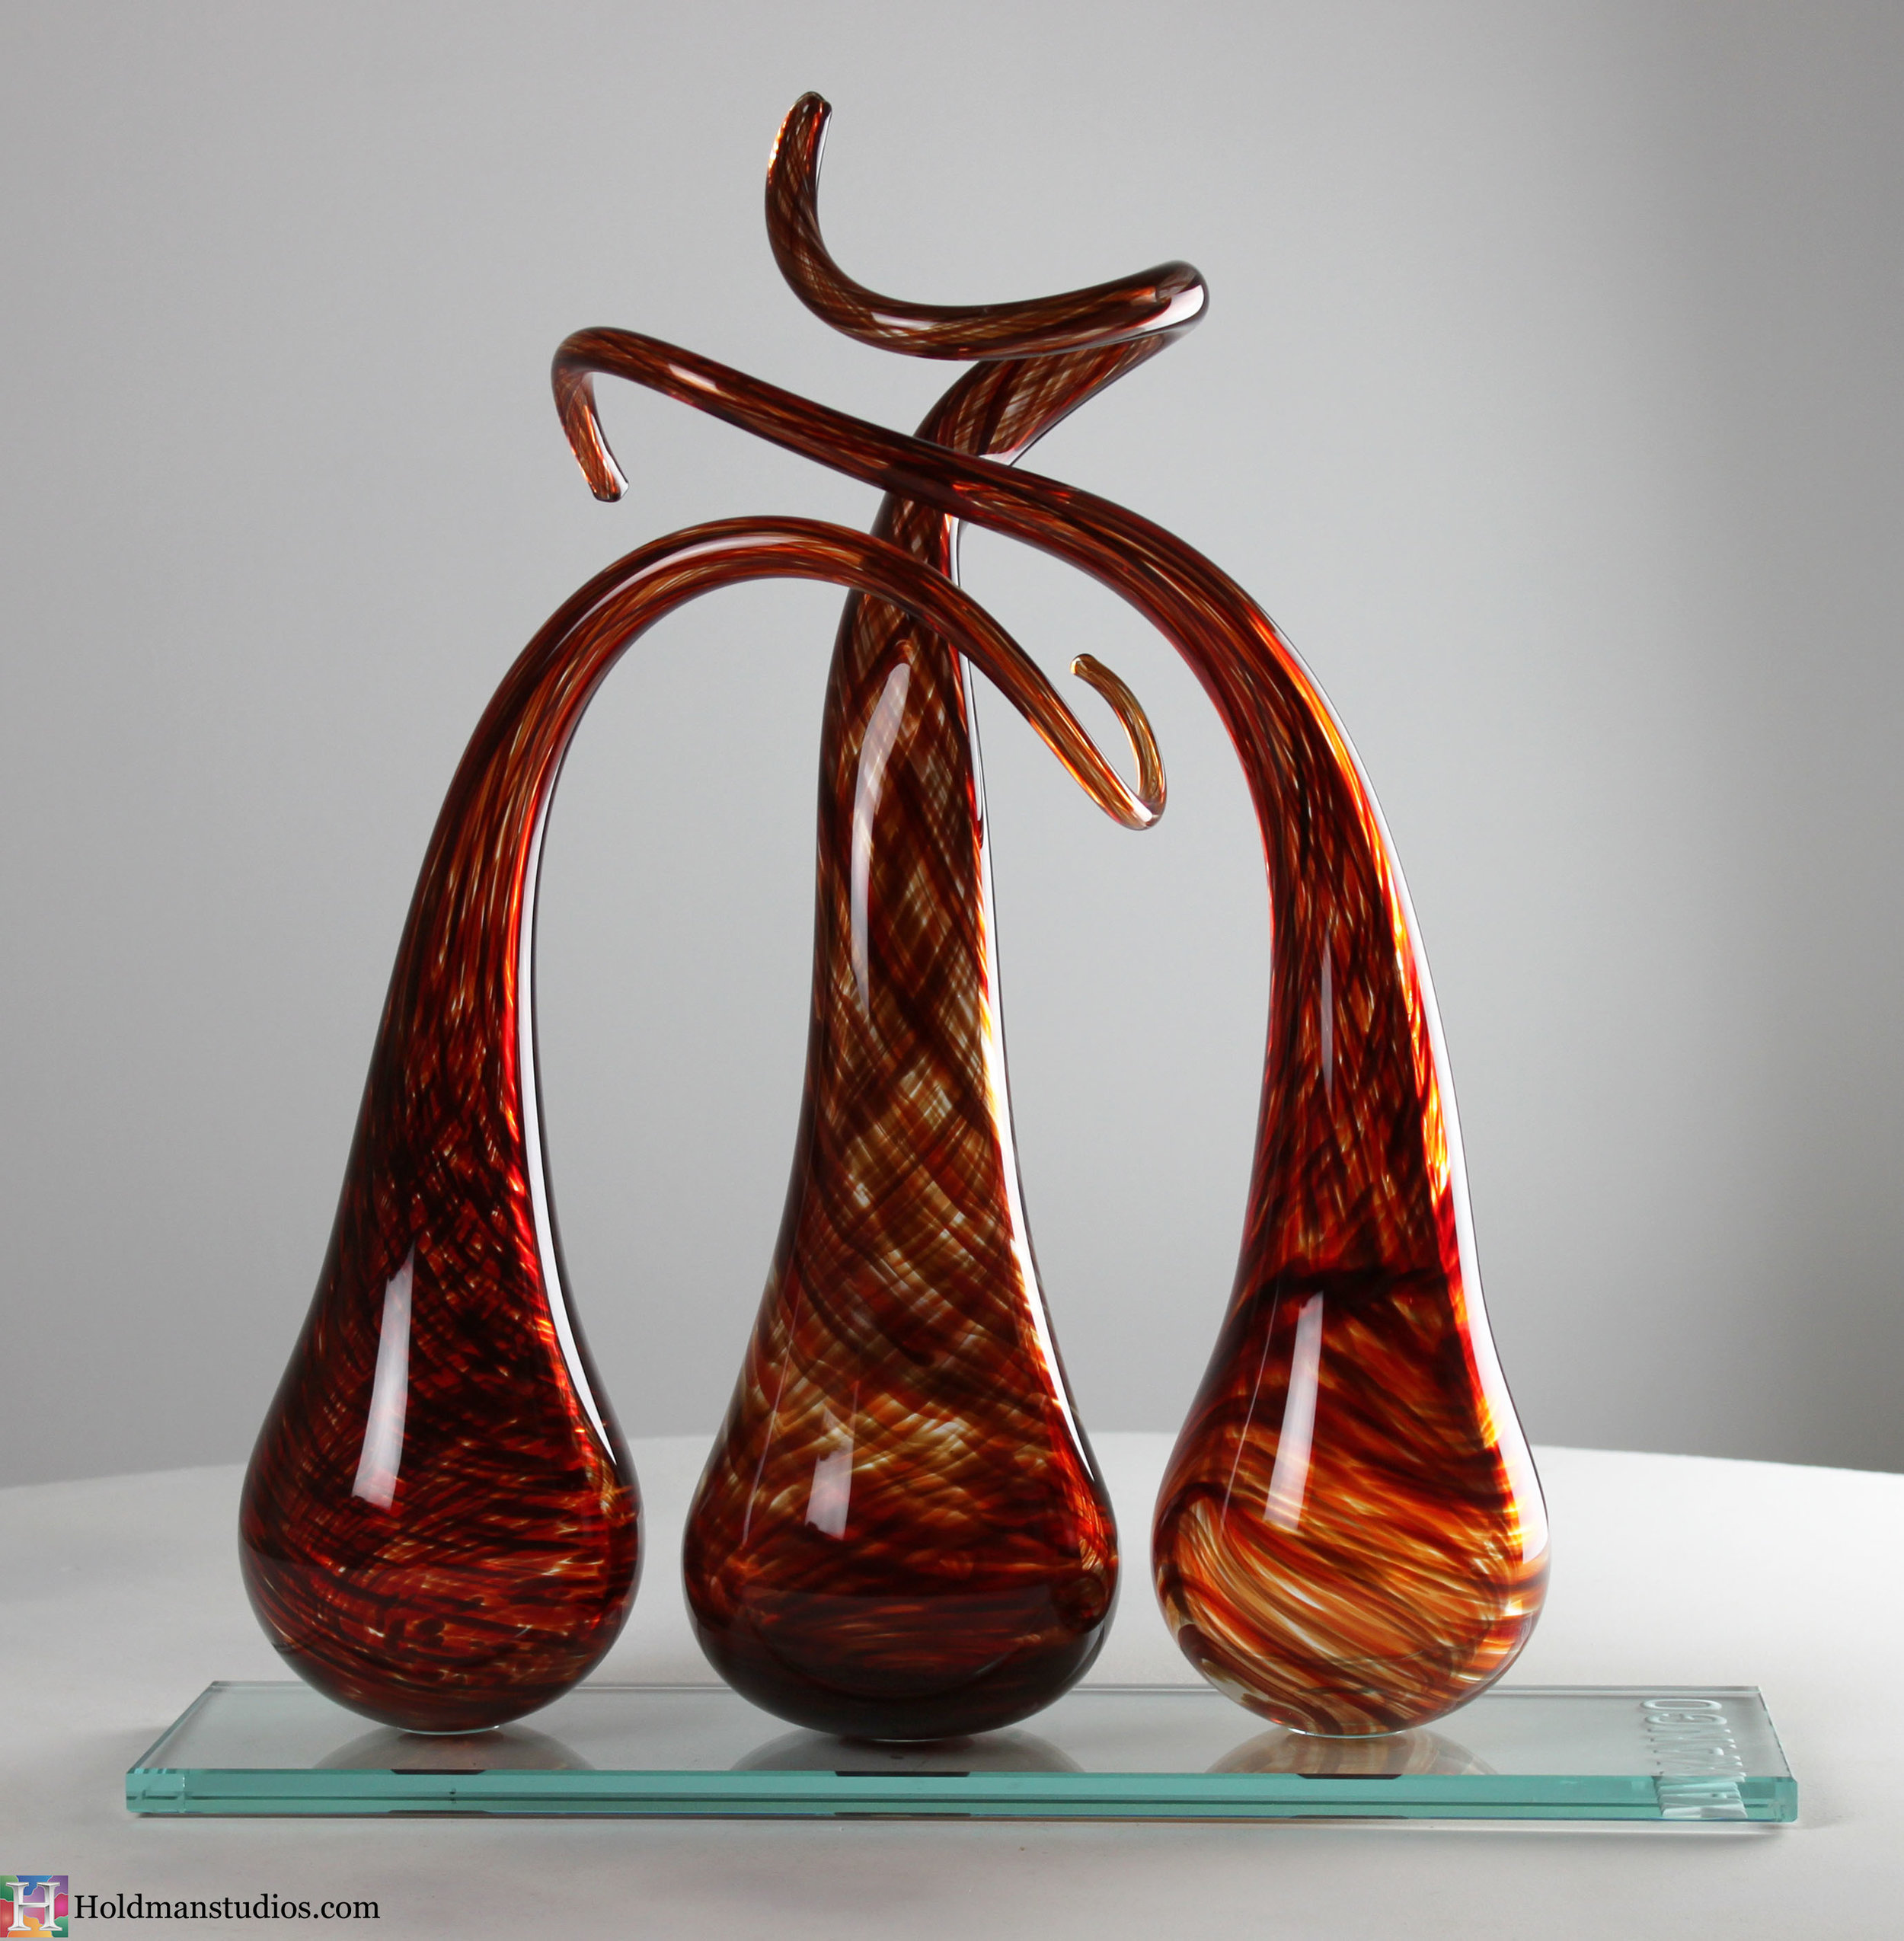 Holdman-studios-hand-blown-glass-xango-glass-sculture.jpg